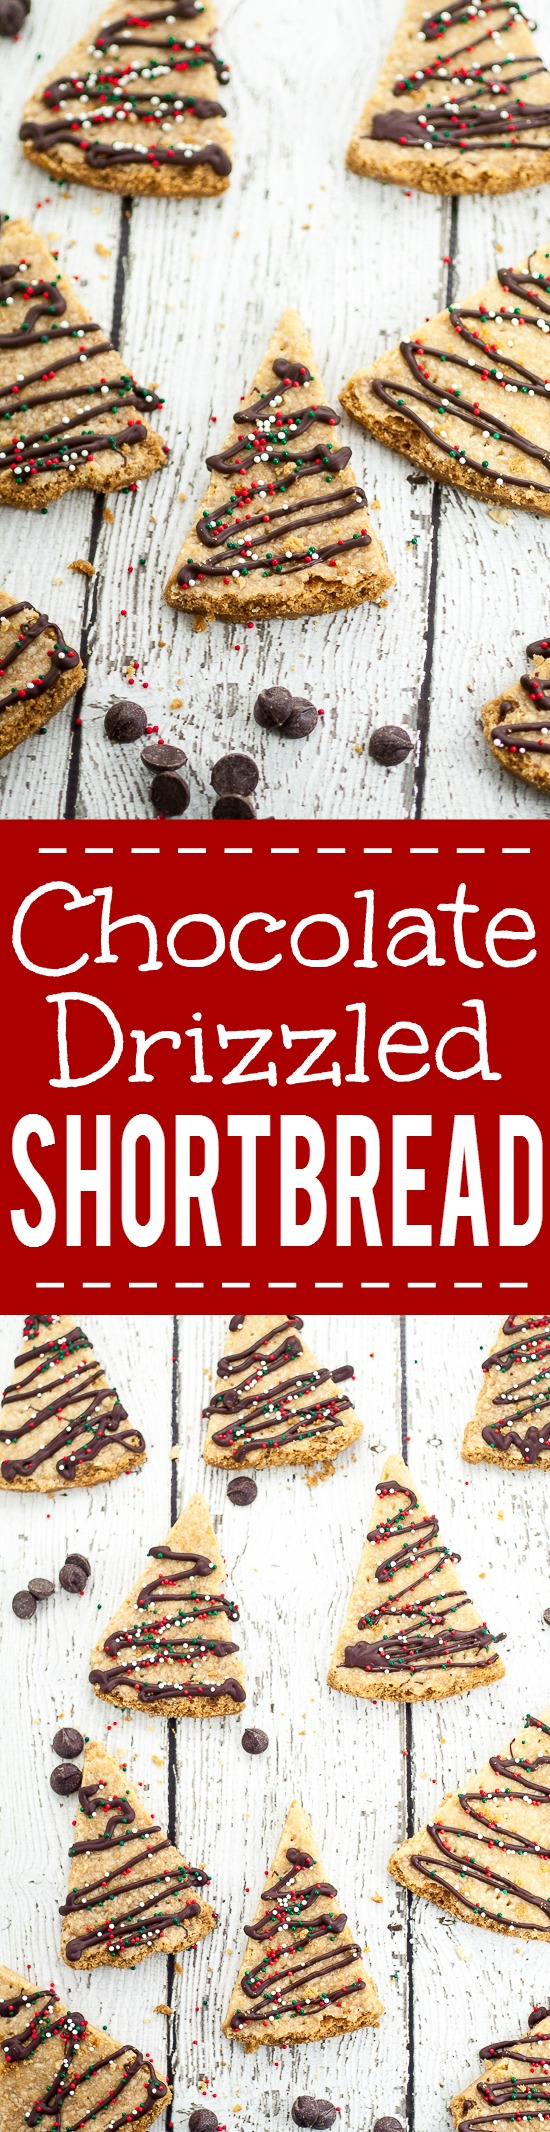 Chocolate Drizzled Shortbread Recipe - A classic buttery shortbread recipe cut into triangles and drizzled with chocolate and festive sprinkles makes this fun Chocolate Drizzled Shortbread cookies look like little Christmas trees.